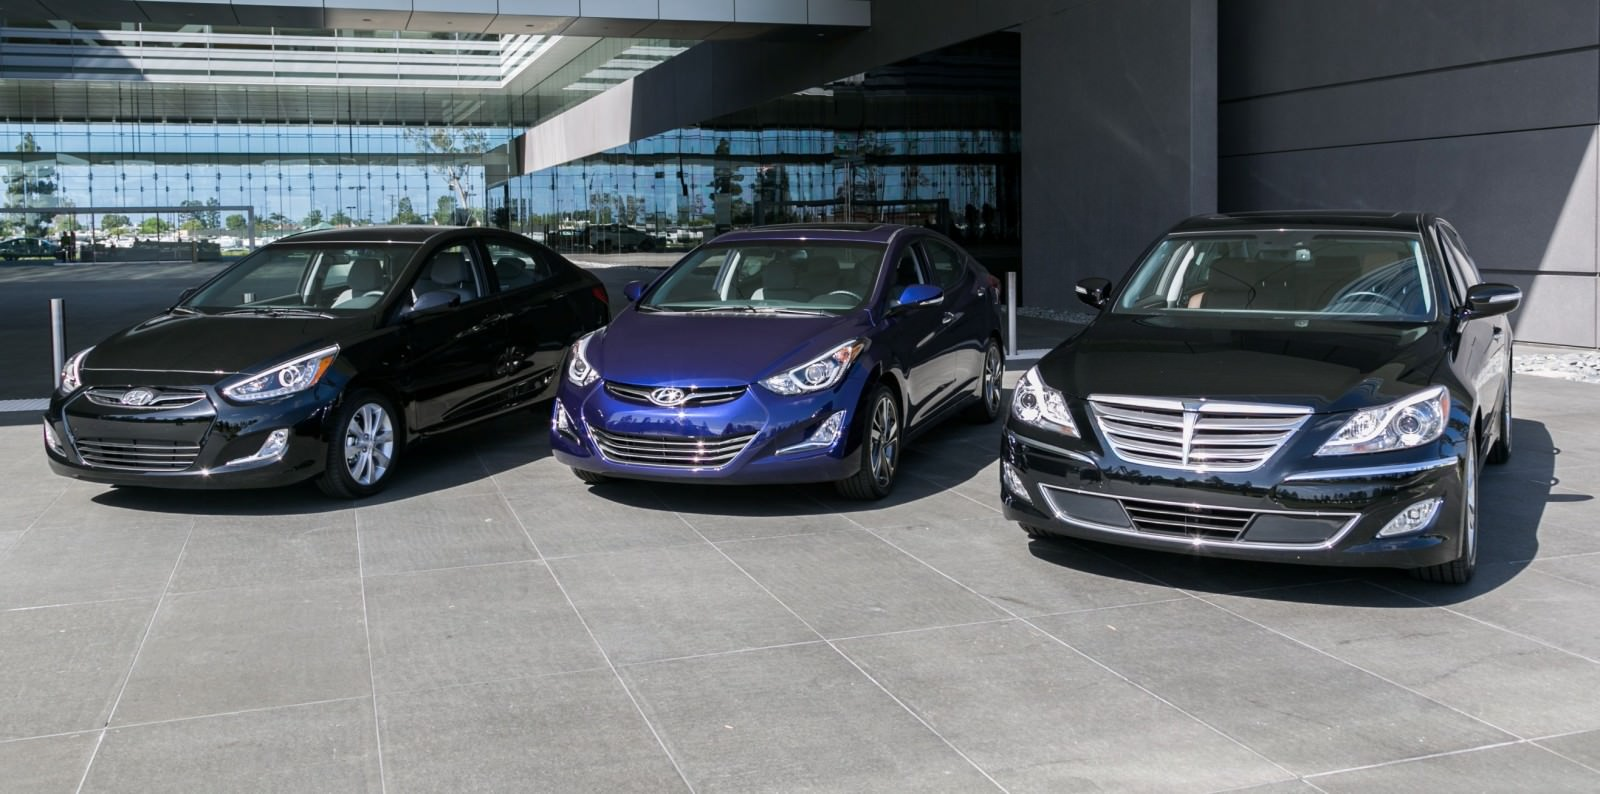 2015 Hyundai Elantra Sedan Brings Classy LED and Tech Updates  15